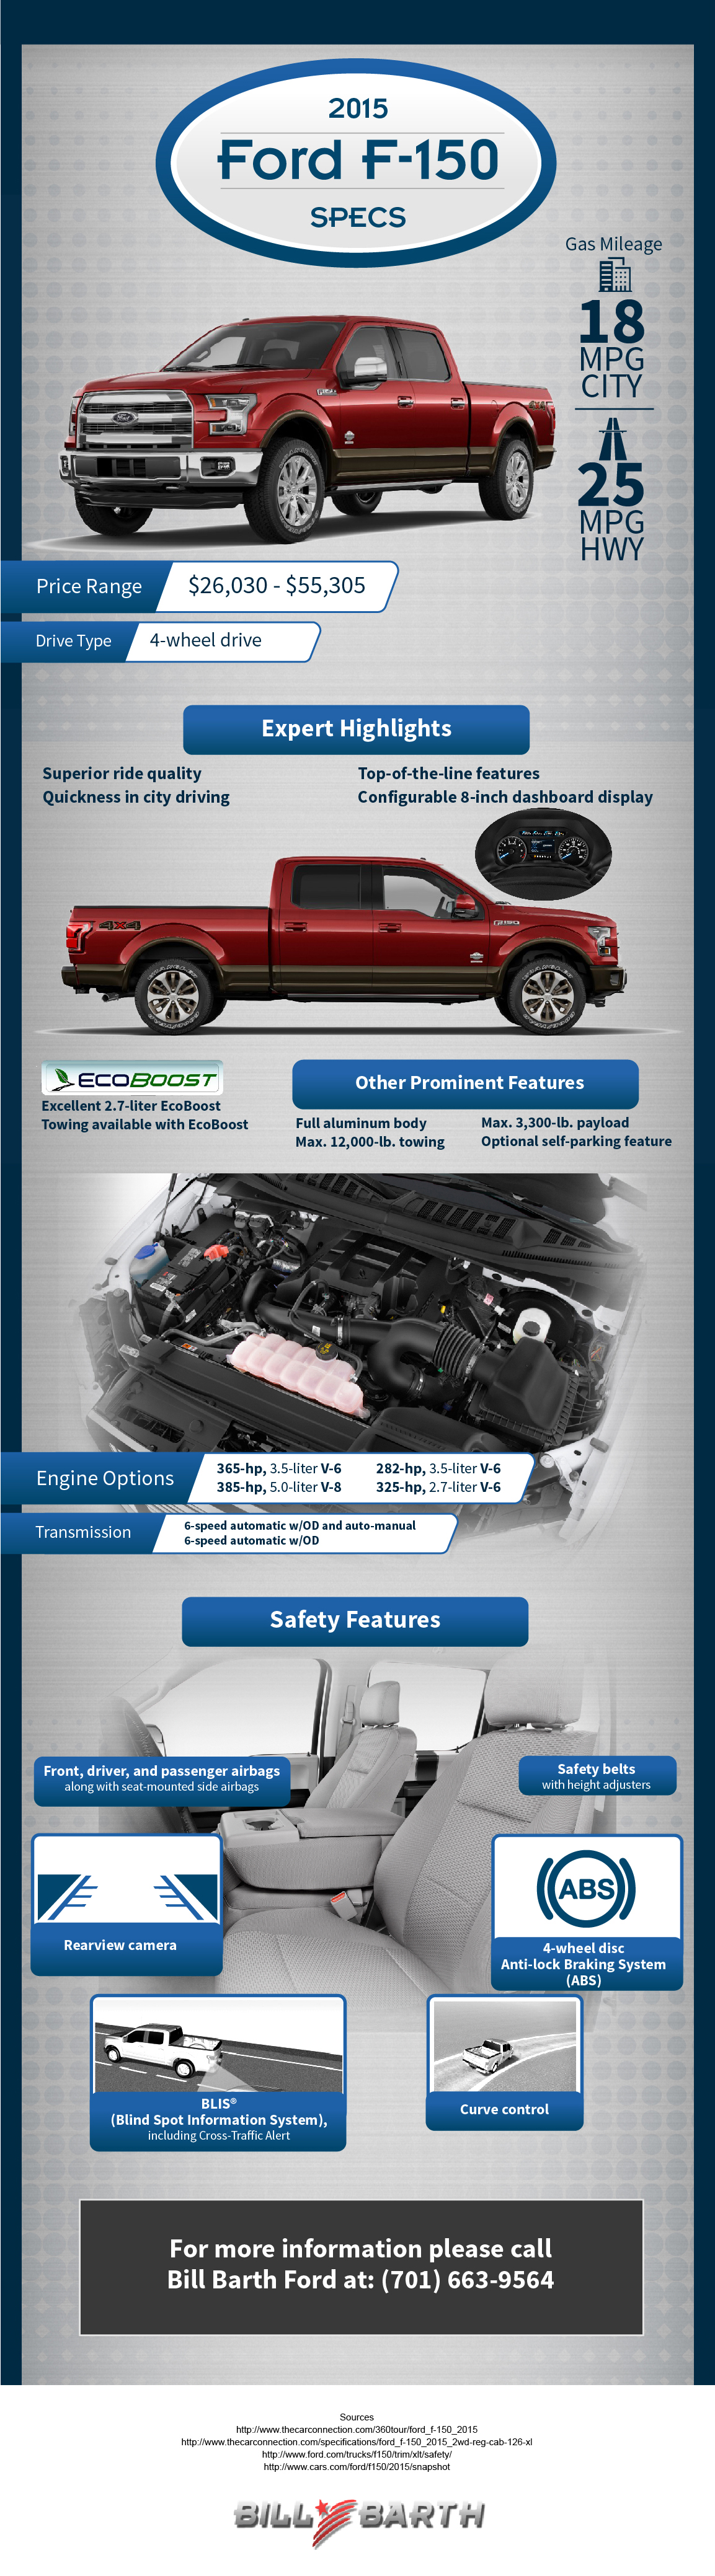 Infographic_wireframe_BillBarthFord_Sept2015_lrg Interesting Info About 2000 ford Ranger towing Capacity with Fascinating Images Cars Review